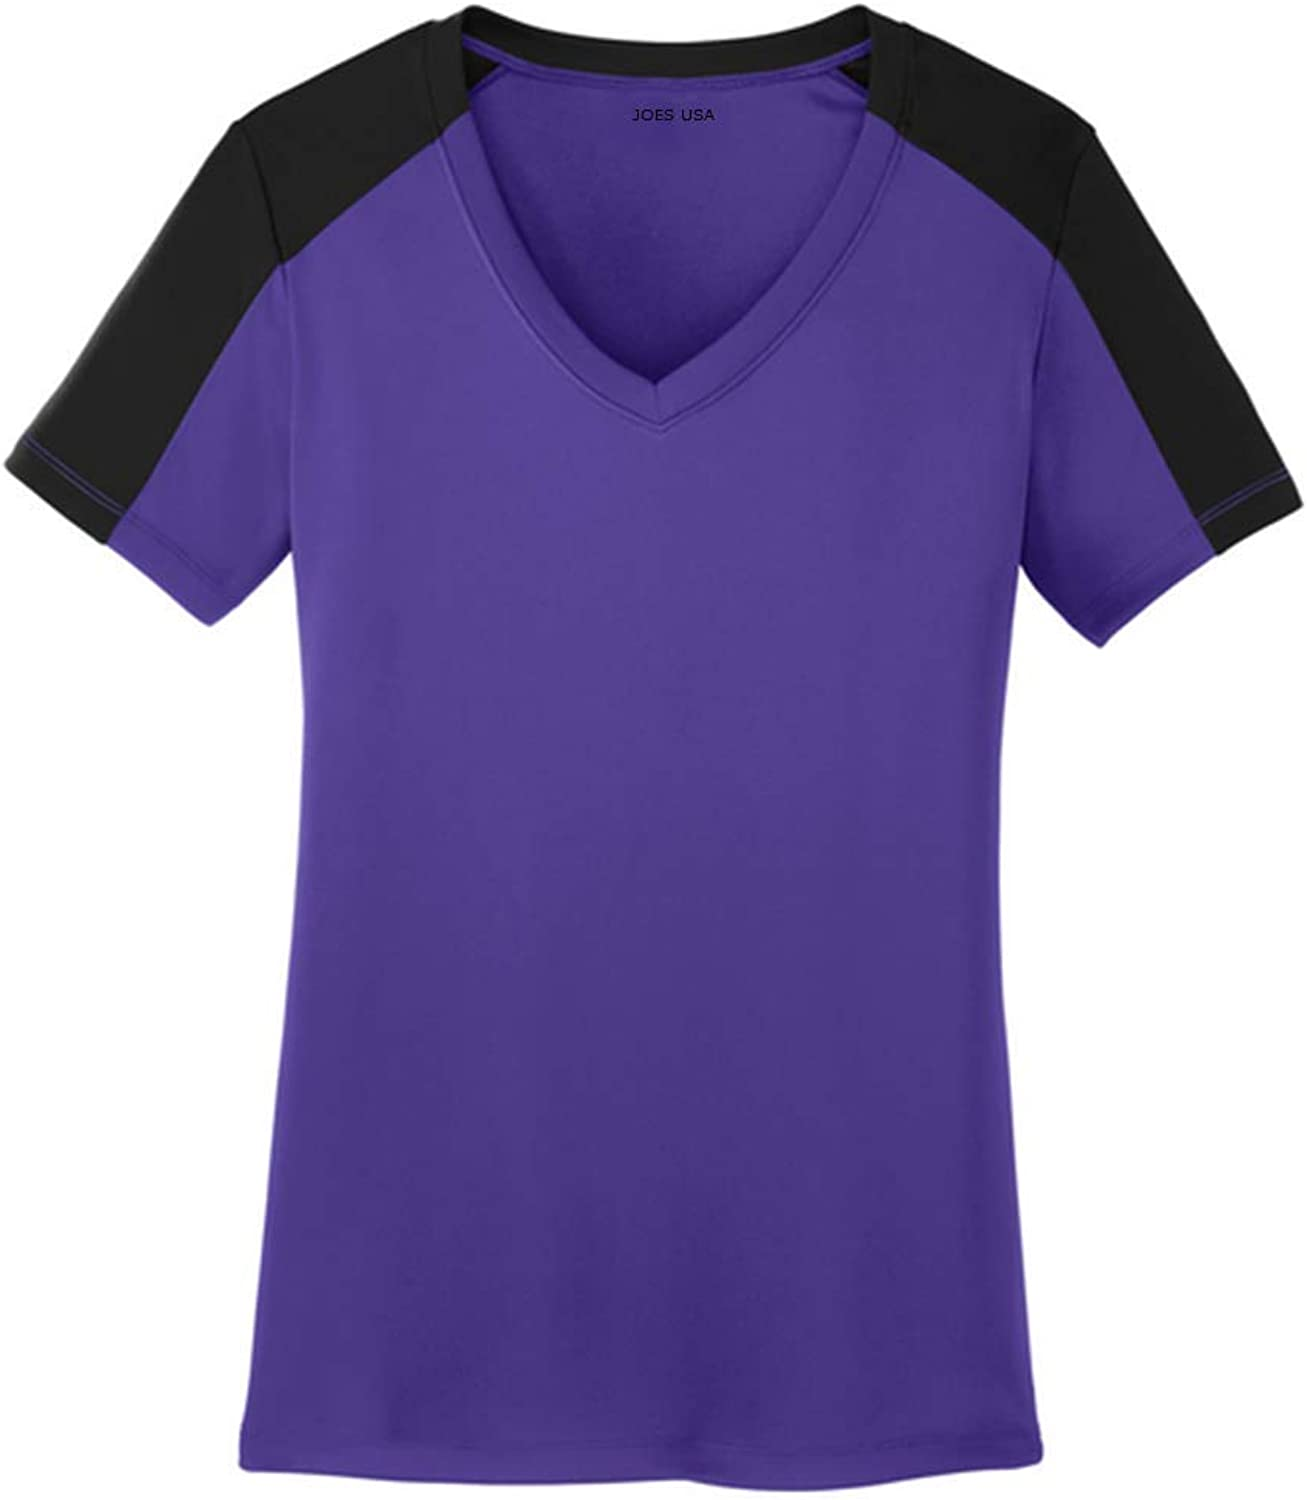 Joe's USA Ladies Athletic VNeck 2 color Sleeve TShirts in Sizes XS4XL